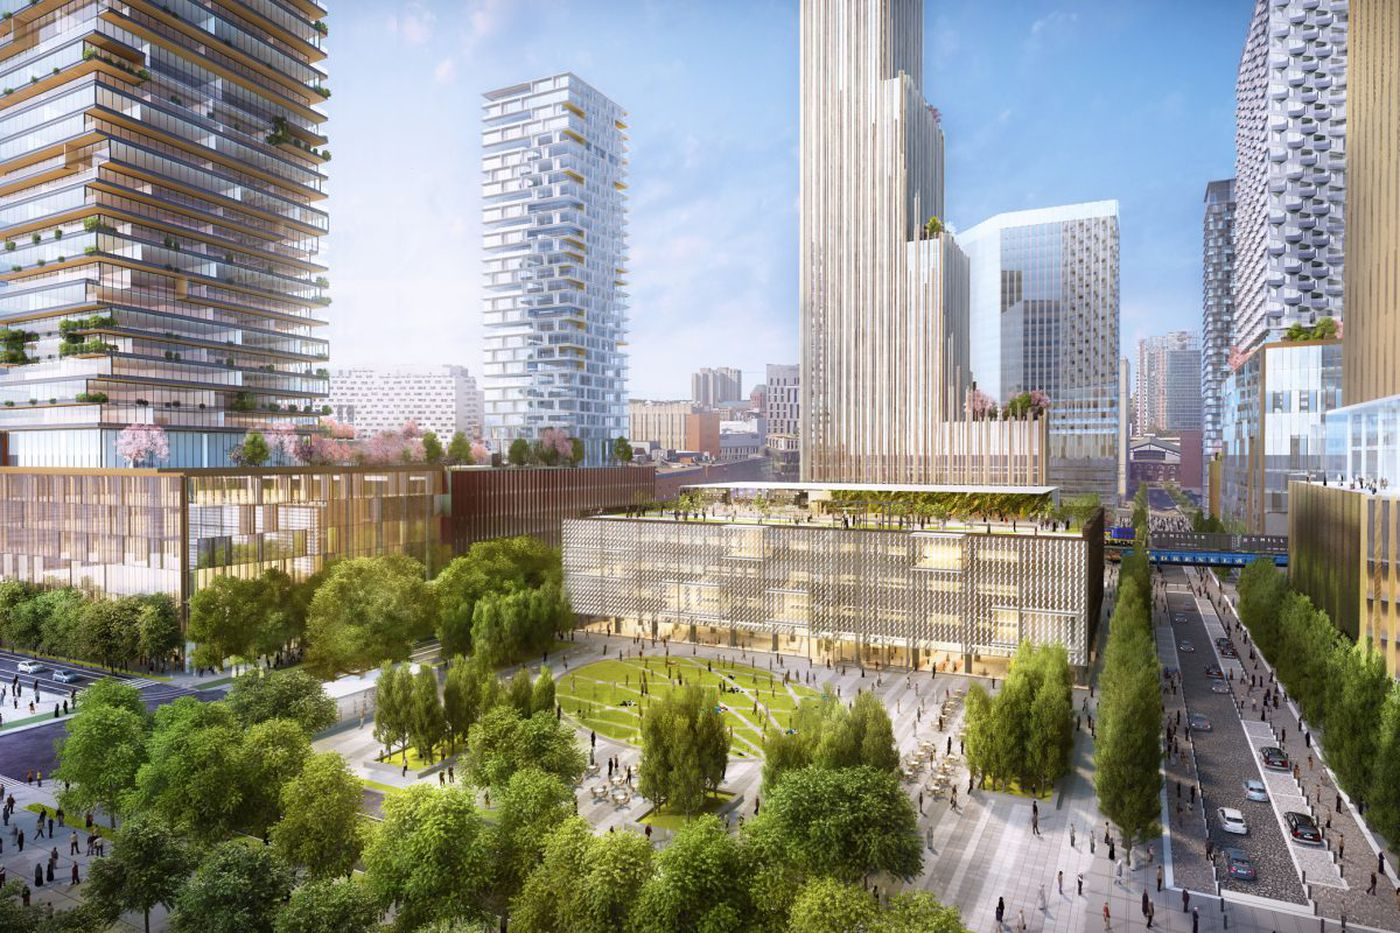 Schuylkill Yards is the latest Philly project with workforce-diversity aims